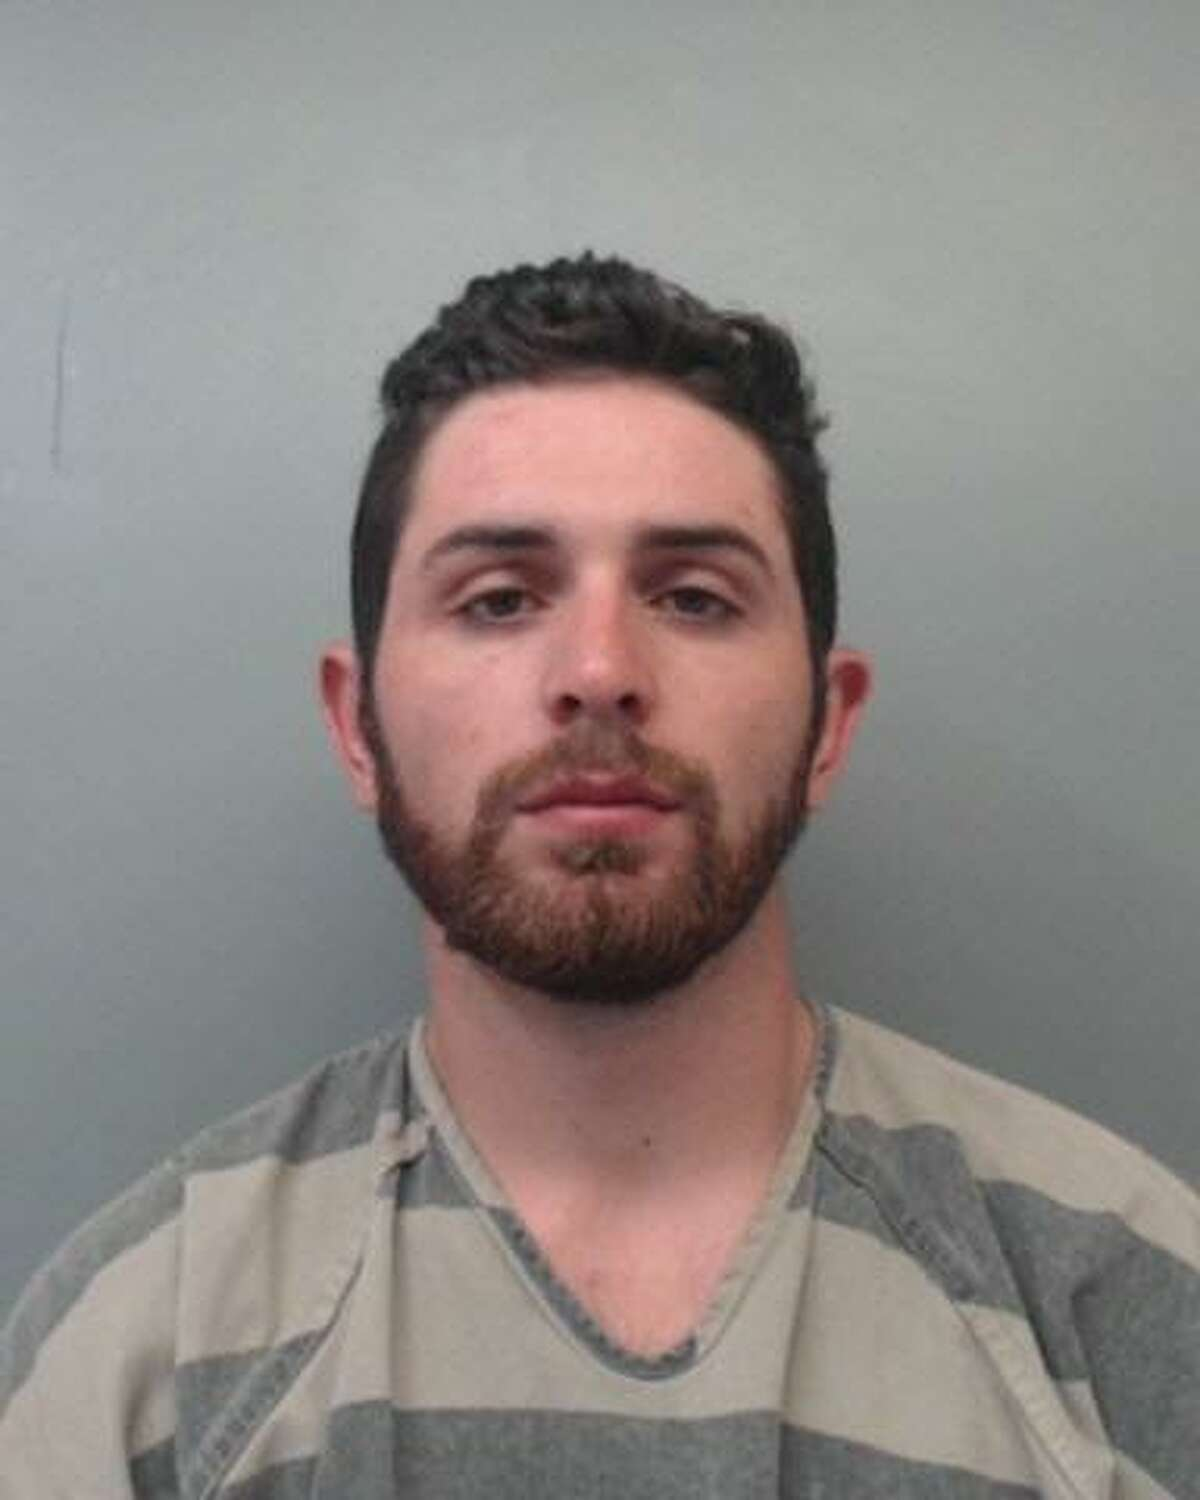 Marcelo Garza Ferrara, 23, was charged with evading arrest with a vehicle, evading arrest on foot, resisting arrest, possession of marijuana and retaliation.